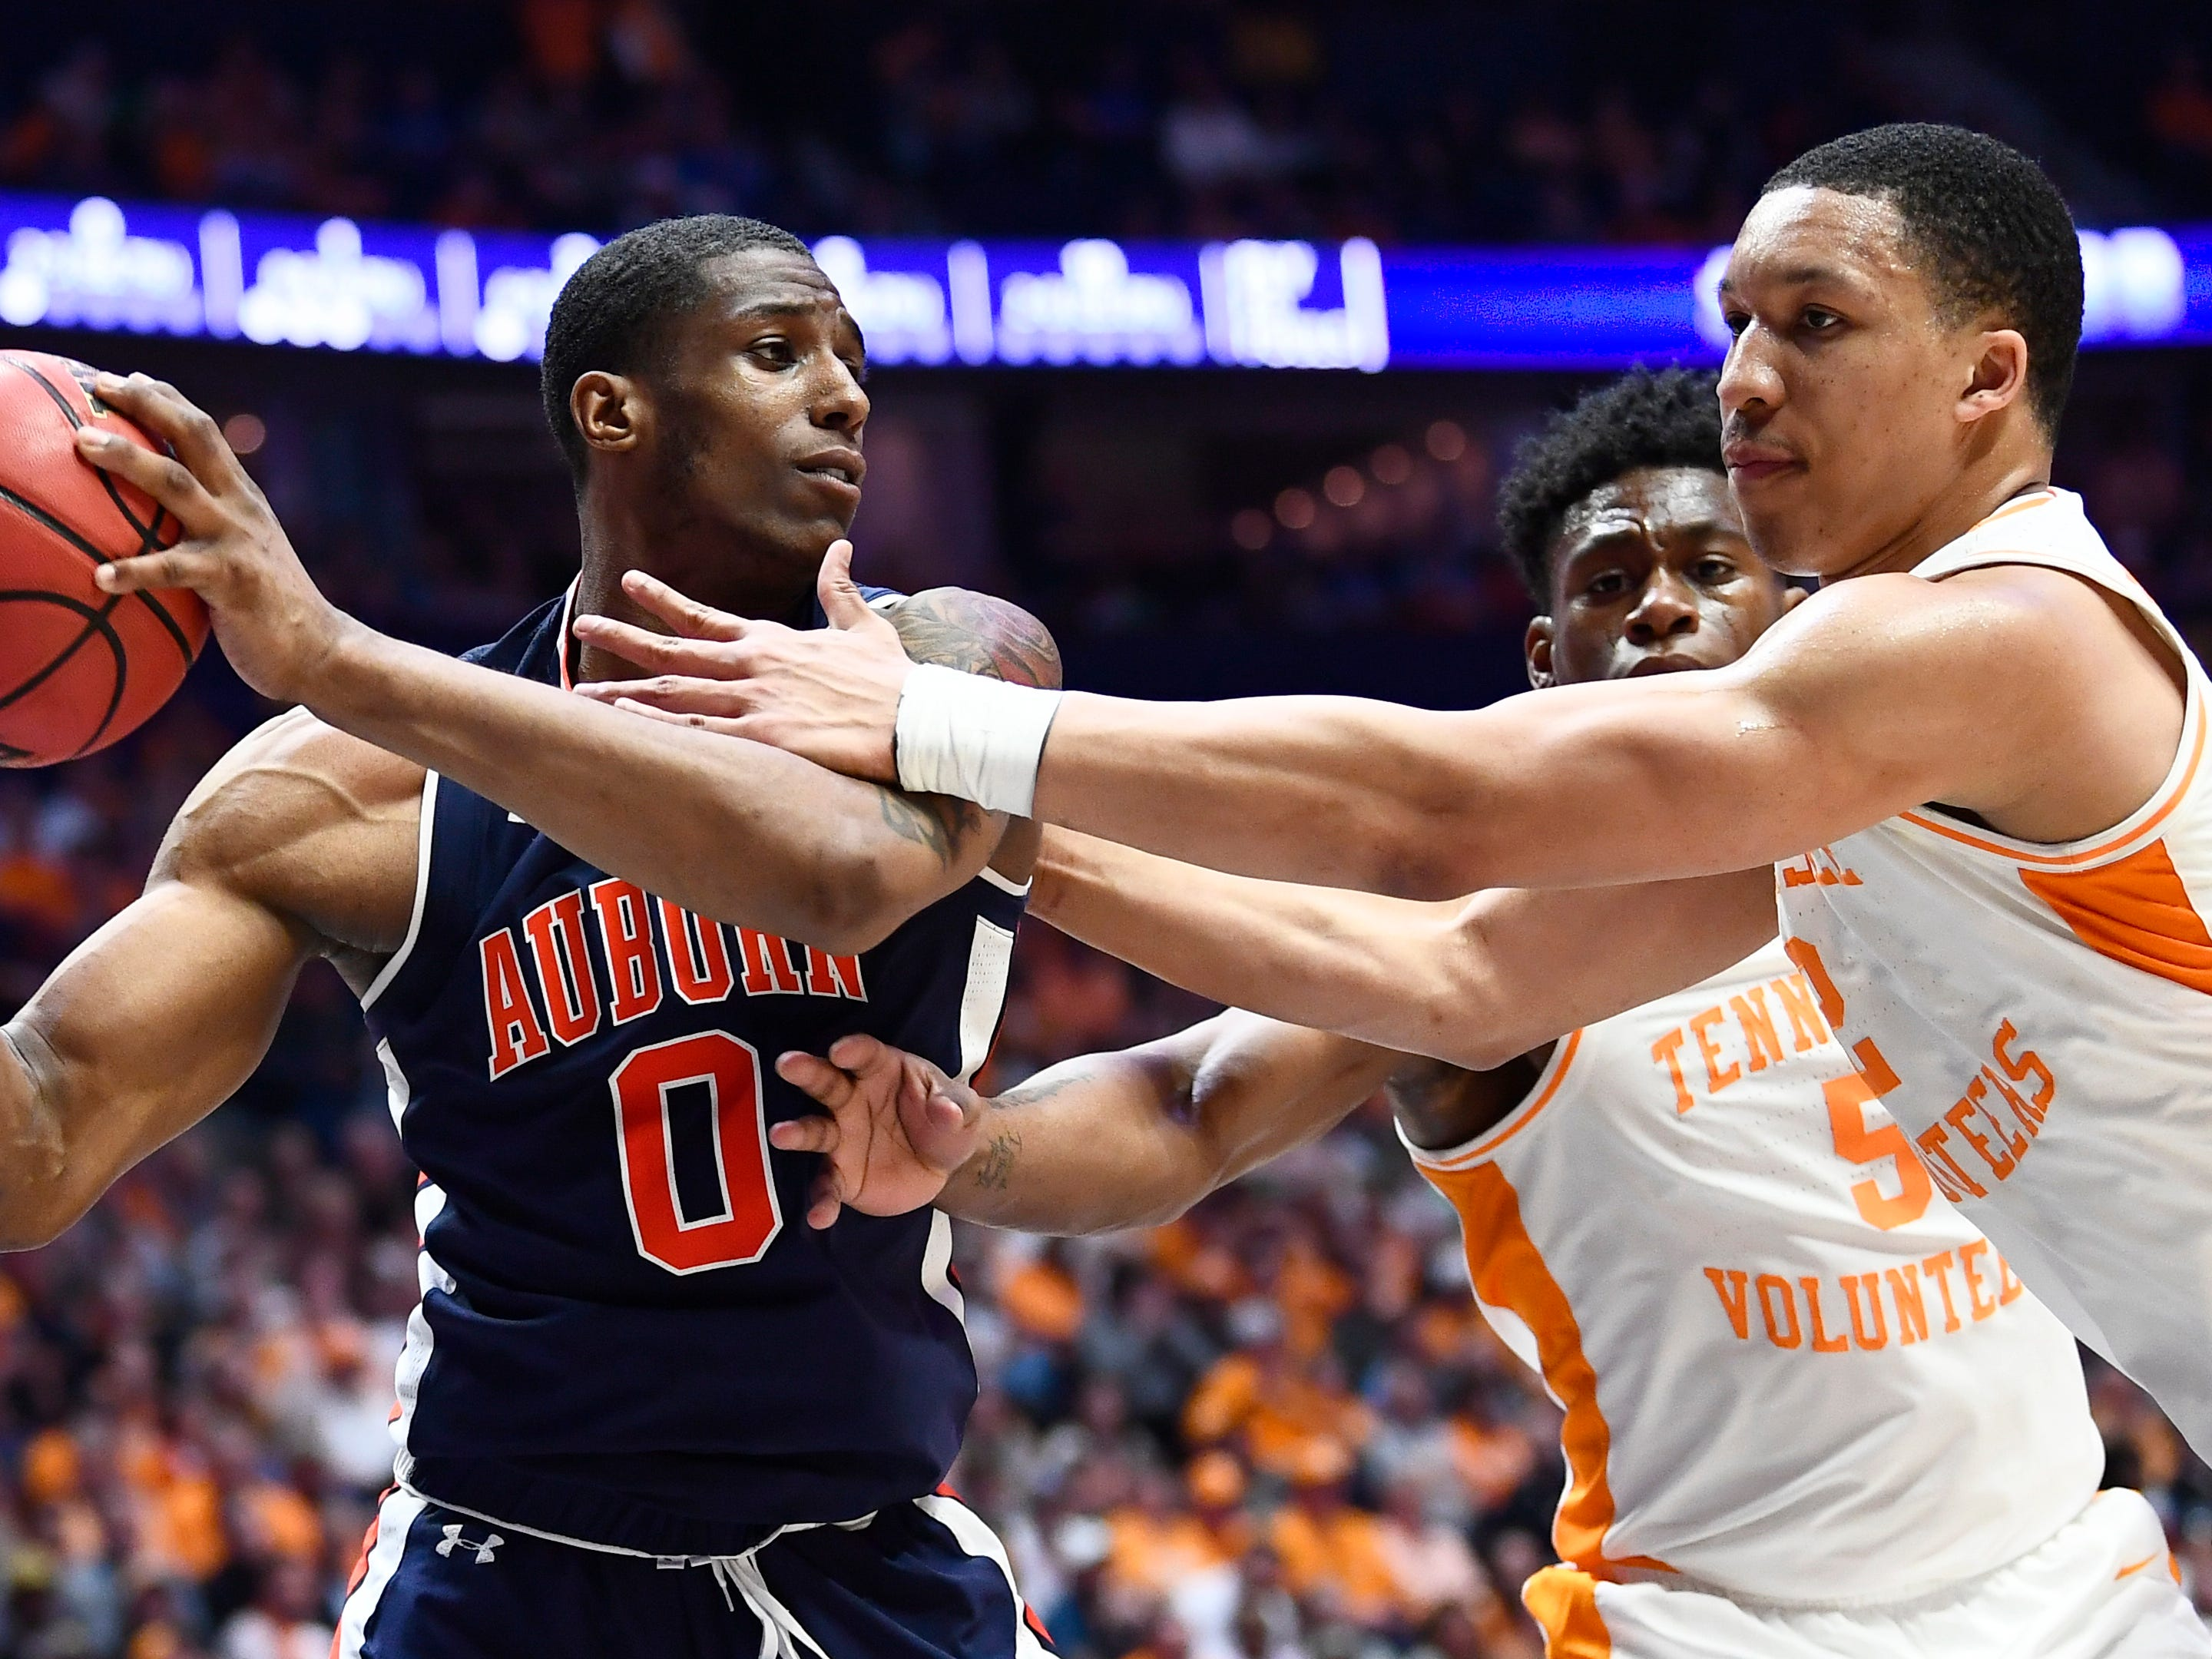 Auburn forward Horace Spencer (0) moves the ball defended by Tennessee guard Admiral Schofield (5) and forward Grant Williams (2) during the second half of the SEC Men's Basketball Tournament championship game at Bridgestone Arena in Nashville, Tenn., Sunday, March 17, 2019.